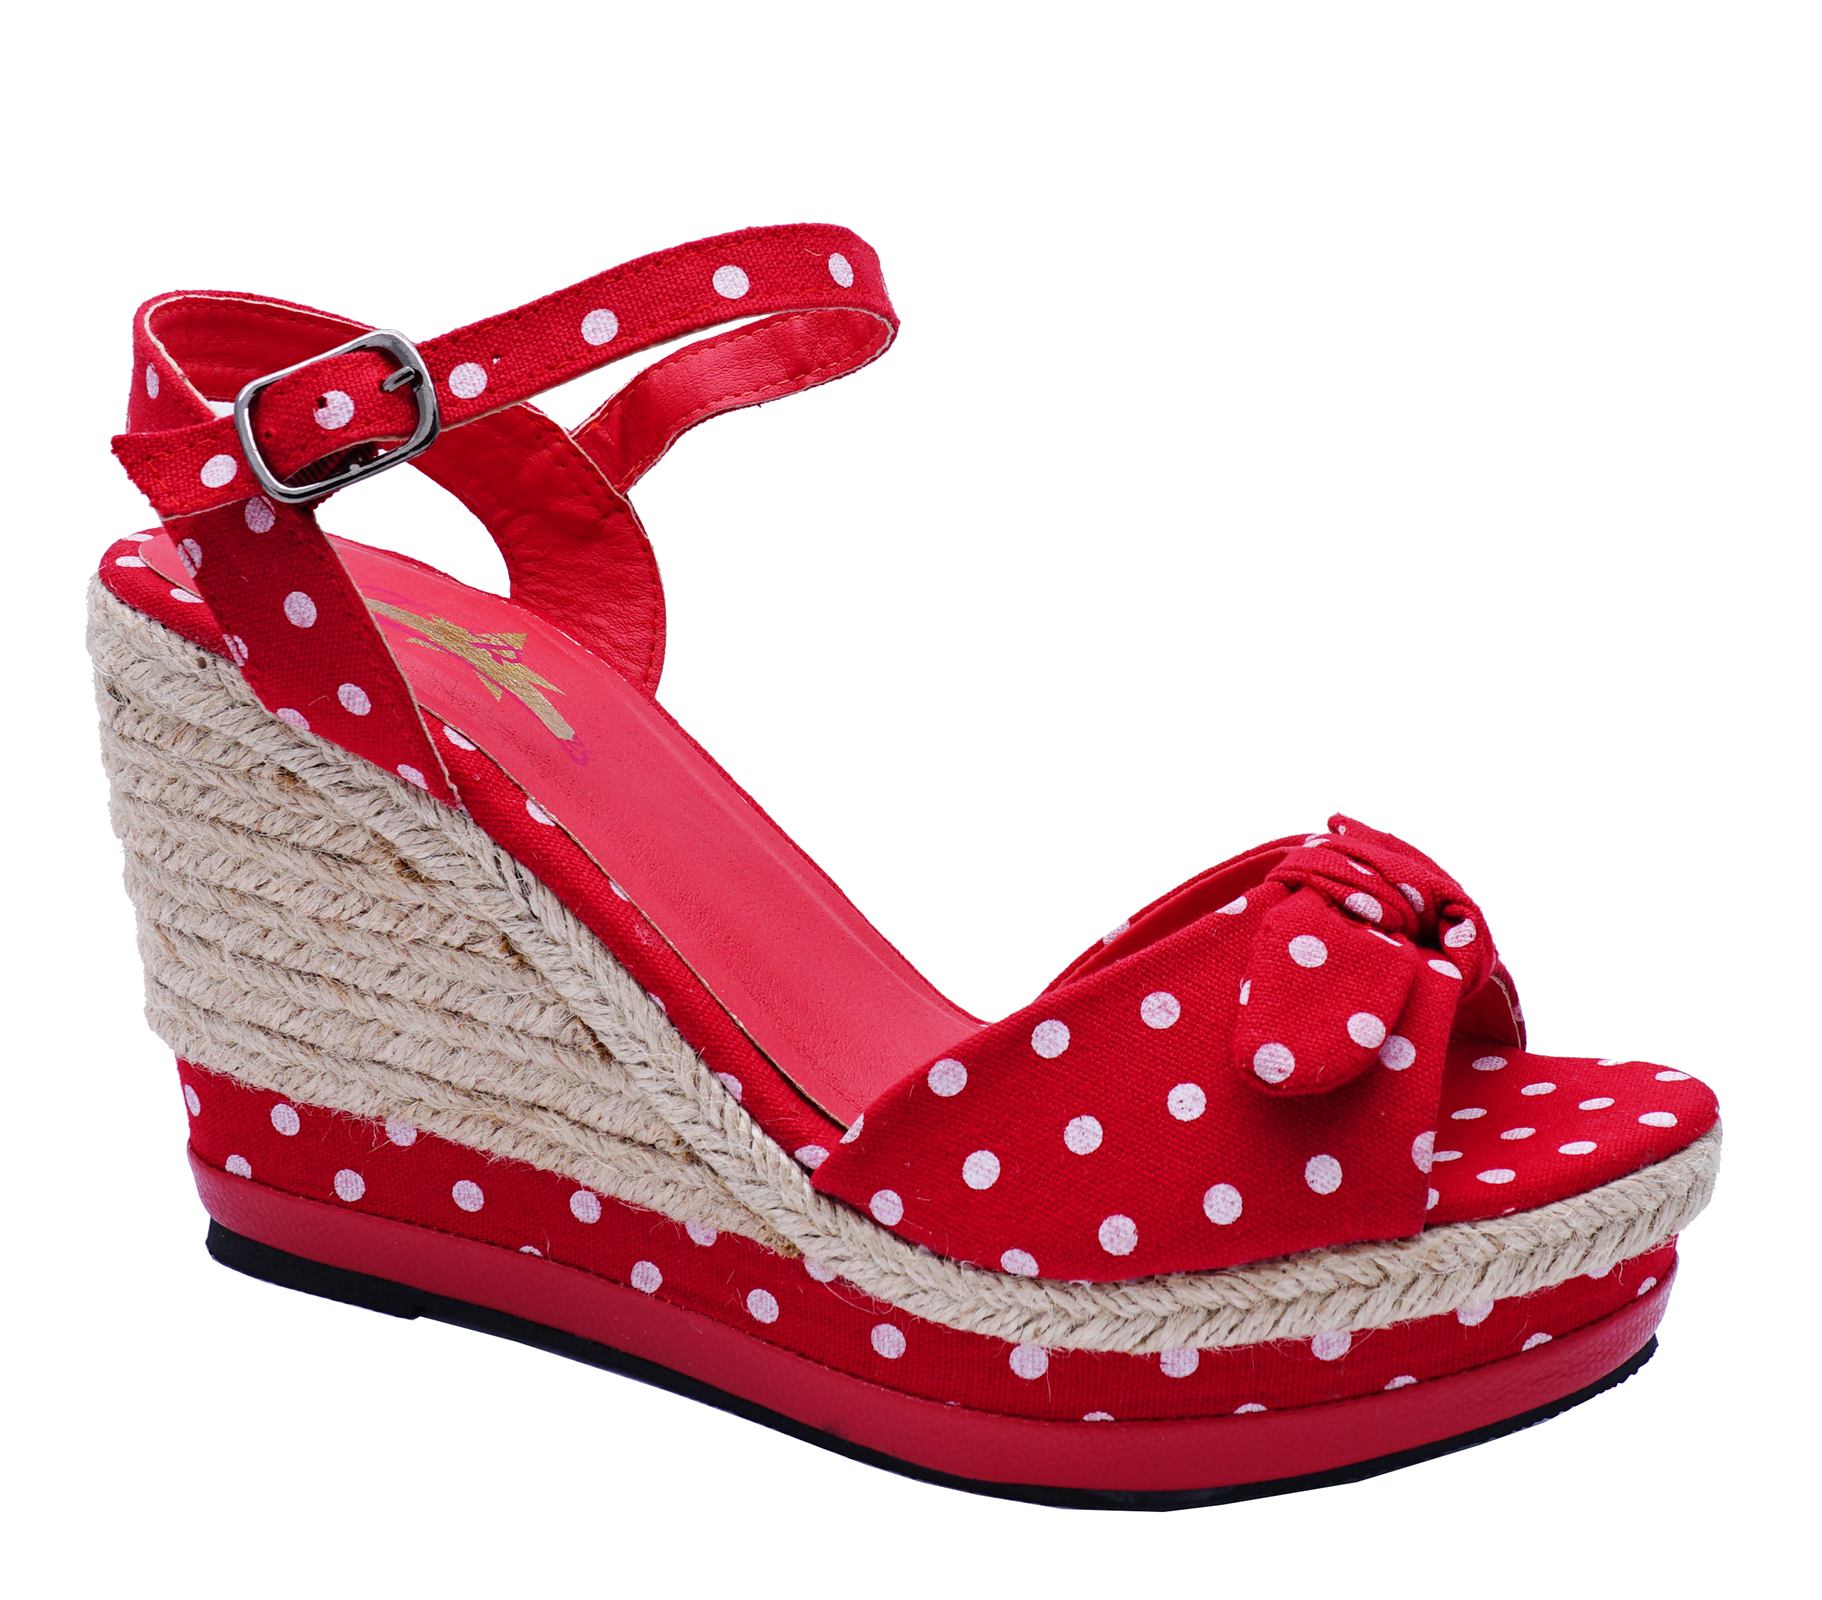 LADIES-RED-POLKA-DOT-ROCKABILLY-OPEN-TOE-COMFY-WEDGES-SANDALS-SHOES-SIZES-3-8 thumbnail 7